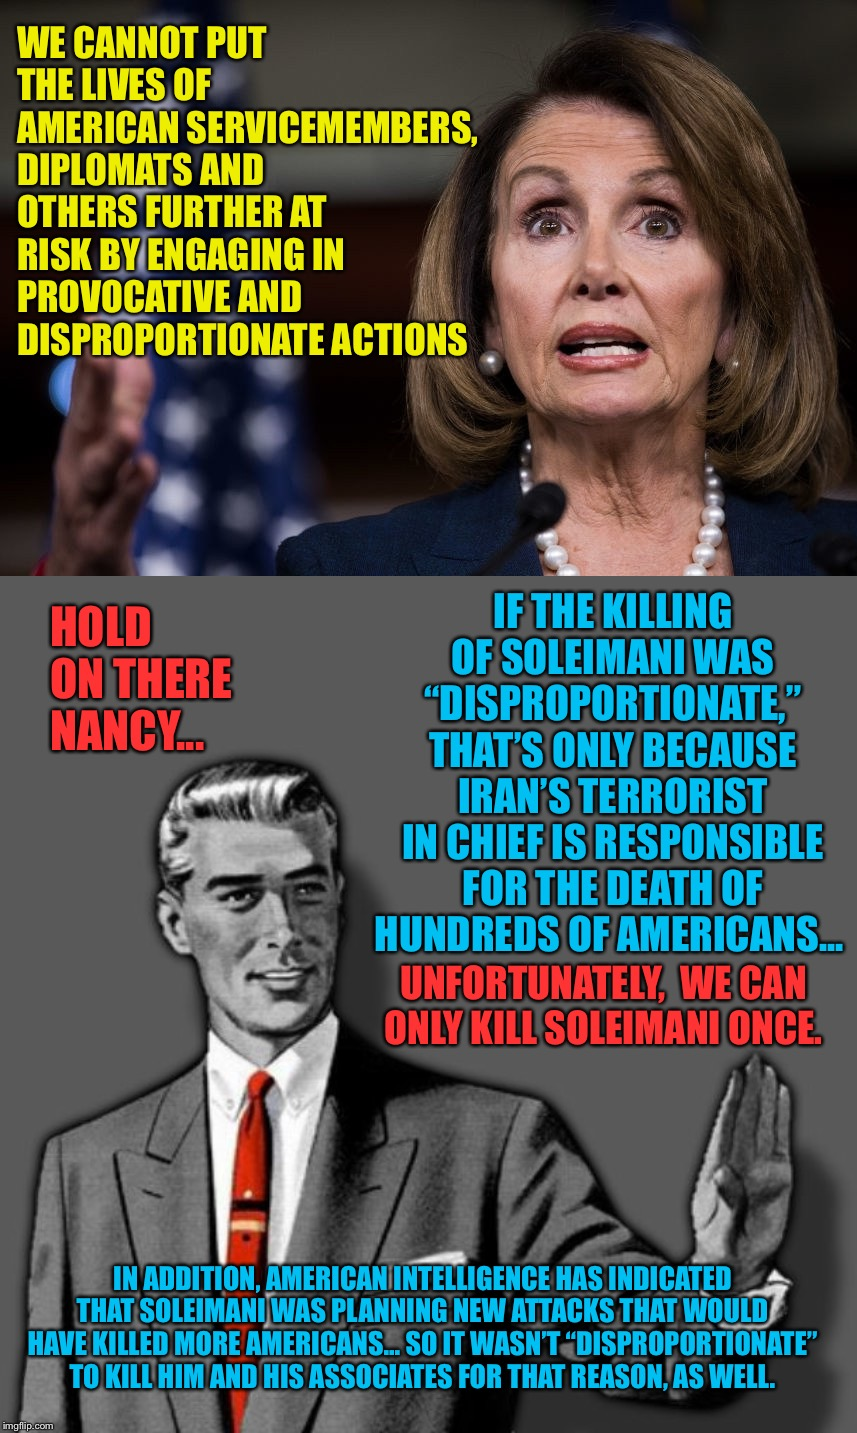 "Hold on there Nancy, I'm going to have to correct you... |  WE CANNOT PUT THE LIVES OF AMERICAN SERVICEMEMBERS, DIPLOMATS AND OTHERS FURTHER AT RISK BY ENGAGING IN PROVOCATIVE AND DISPROPORTIONATE ACTIONS; IF THE KILLING OF SOLEIMANI WAS ""DISPROPORTIONATE,"" THAT'S ONLY BECAUSE IRAN'S TERRORIST IN CHIEF IS RESPONSIBLE FOR THE DEATH OF HUNDREDS OF AMERICANS... HOLD ON THERE NANCY... UNFORTUNATELY,  WE CAN ONLY KILL SOLEIMANI ONCE. IN ADDITION, AMERICAN INTELLIGENCE HAS INDICATED THAT SOLEIMANI WAS PLANNING NEW ATTACKS THAT WOULD HAVE KILLED MORE AMERICANS... SO IT WASN'T ""DISPROPORTIONATE"" TO KILL HIM AND HIS ASSOCIATES FOR THAT REASON, AS WELL. 